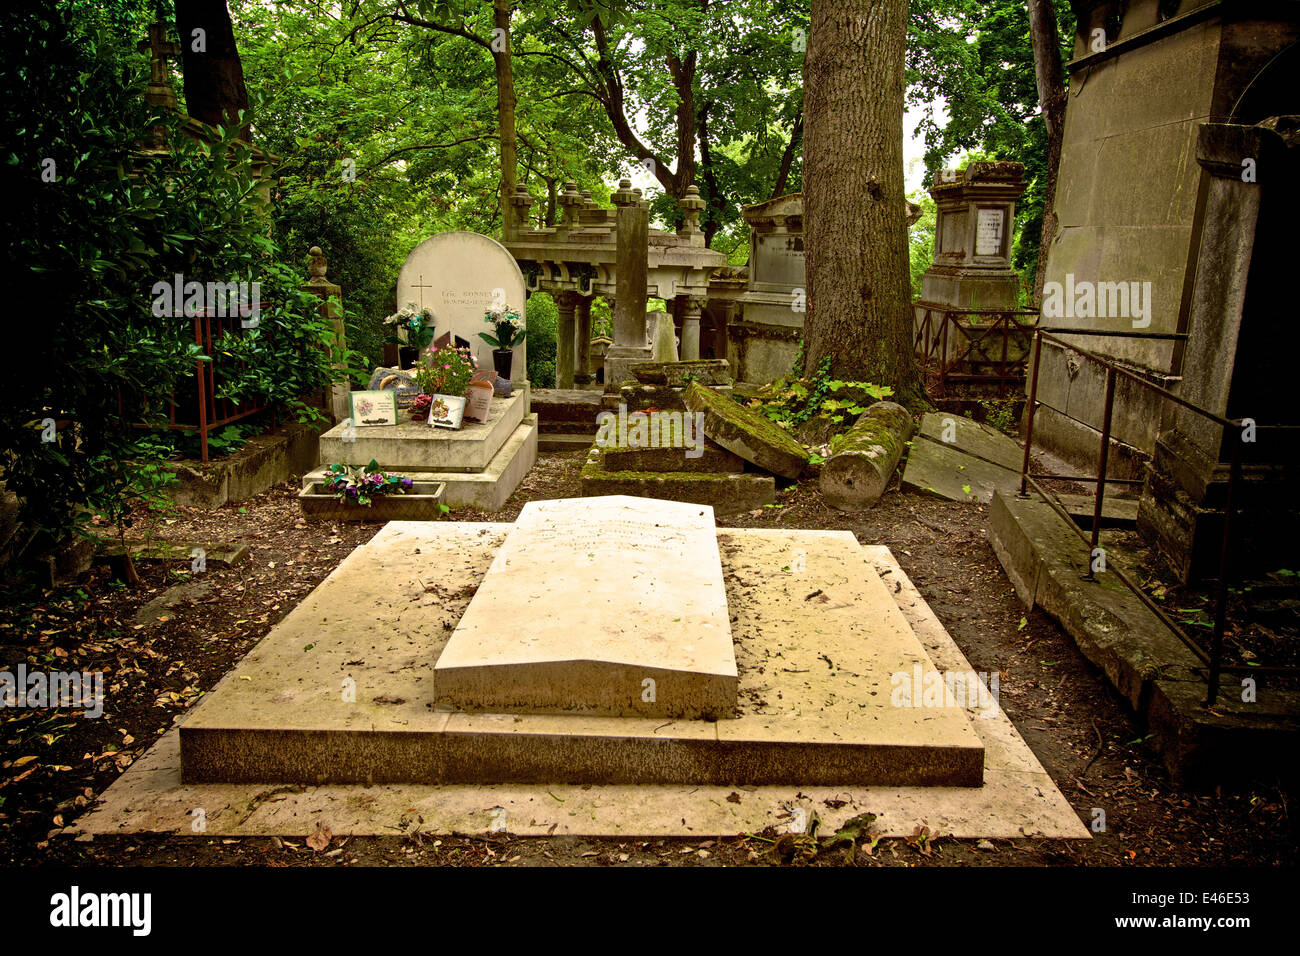 Graves in the Pere Lachaise cemetery graveyard, Paris, France - Stock Image